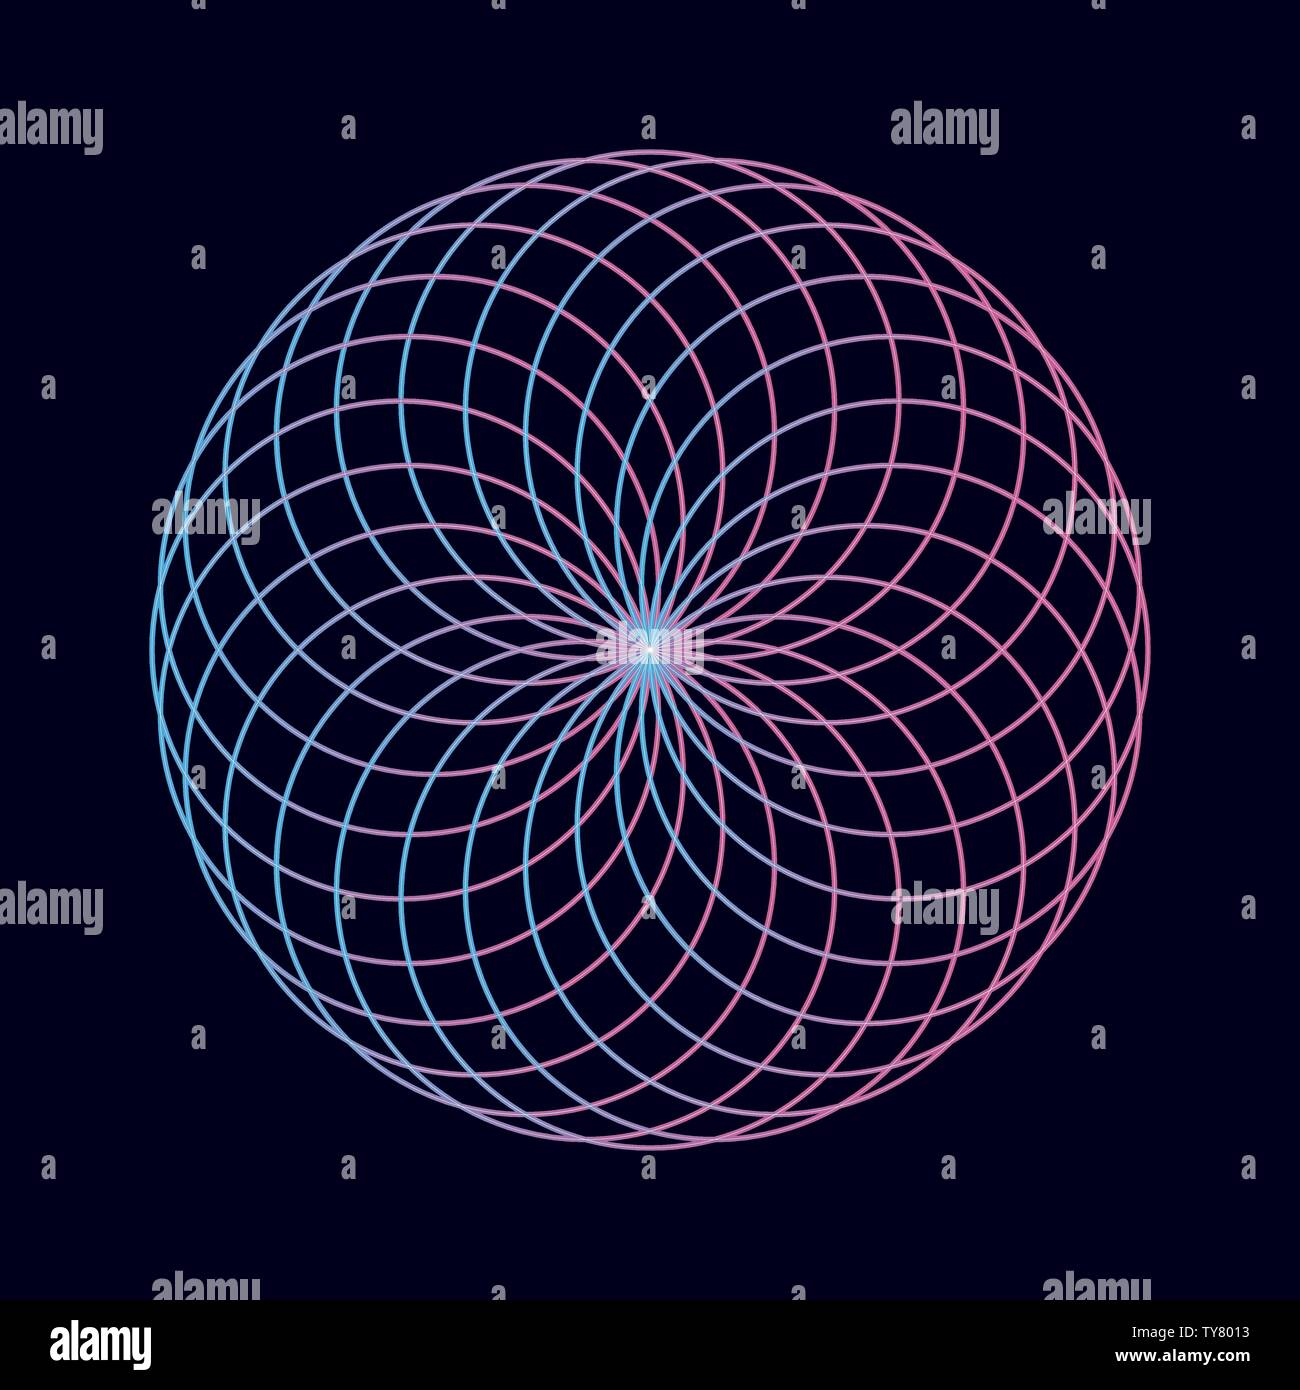 Sacred Geometry Vector Vectors Stock Photos & Sacred Geometry Vector